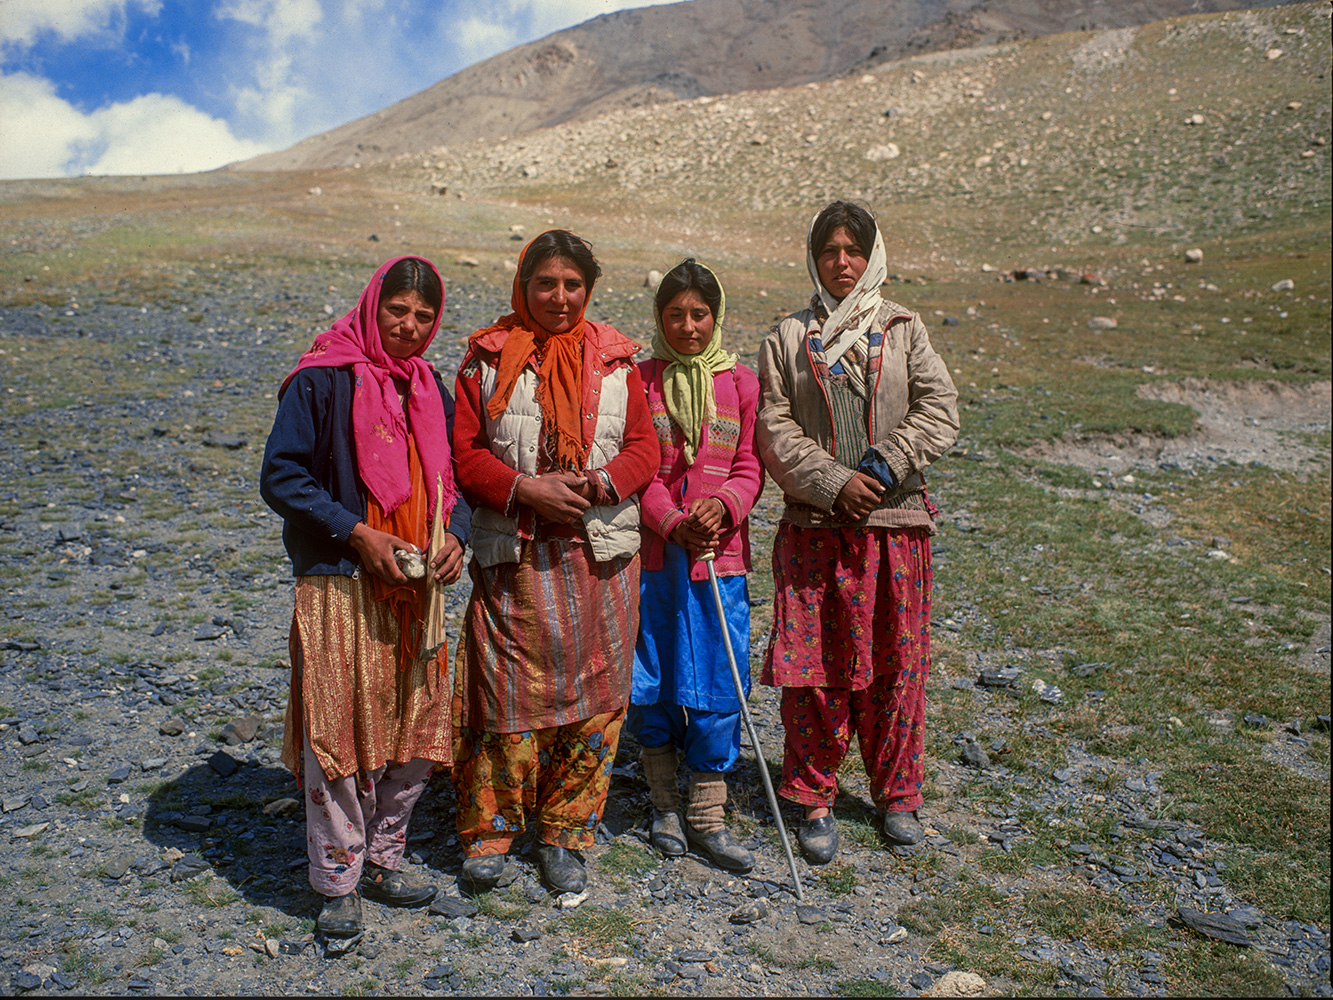 Shimshali Girls at Shuwert